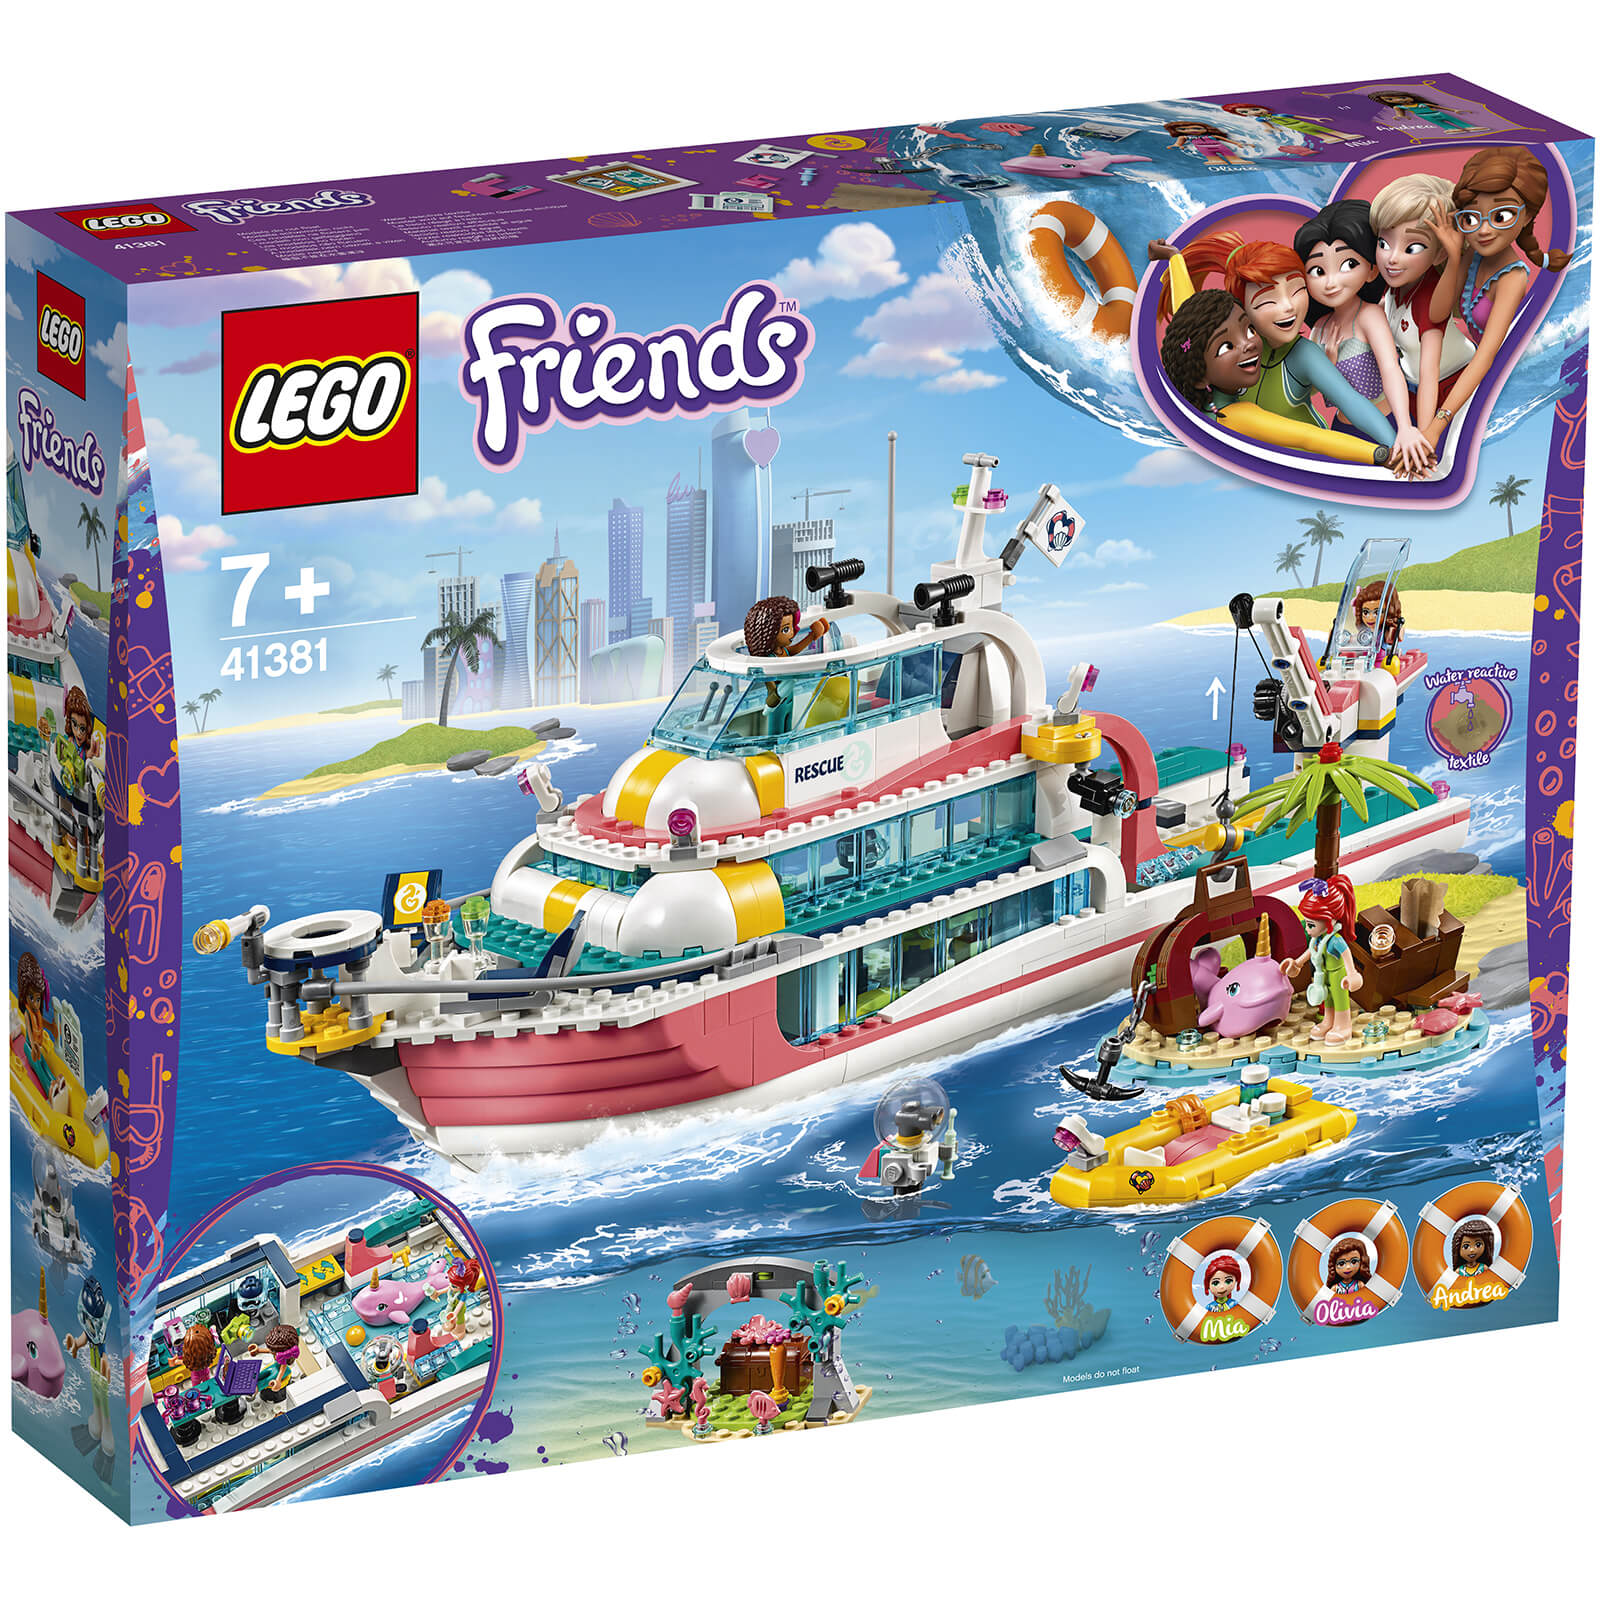 Image of LEGO Friends: Rescue Mission Boat Toy Sea Life Set (41381)